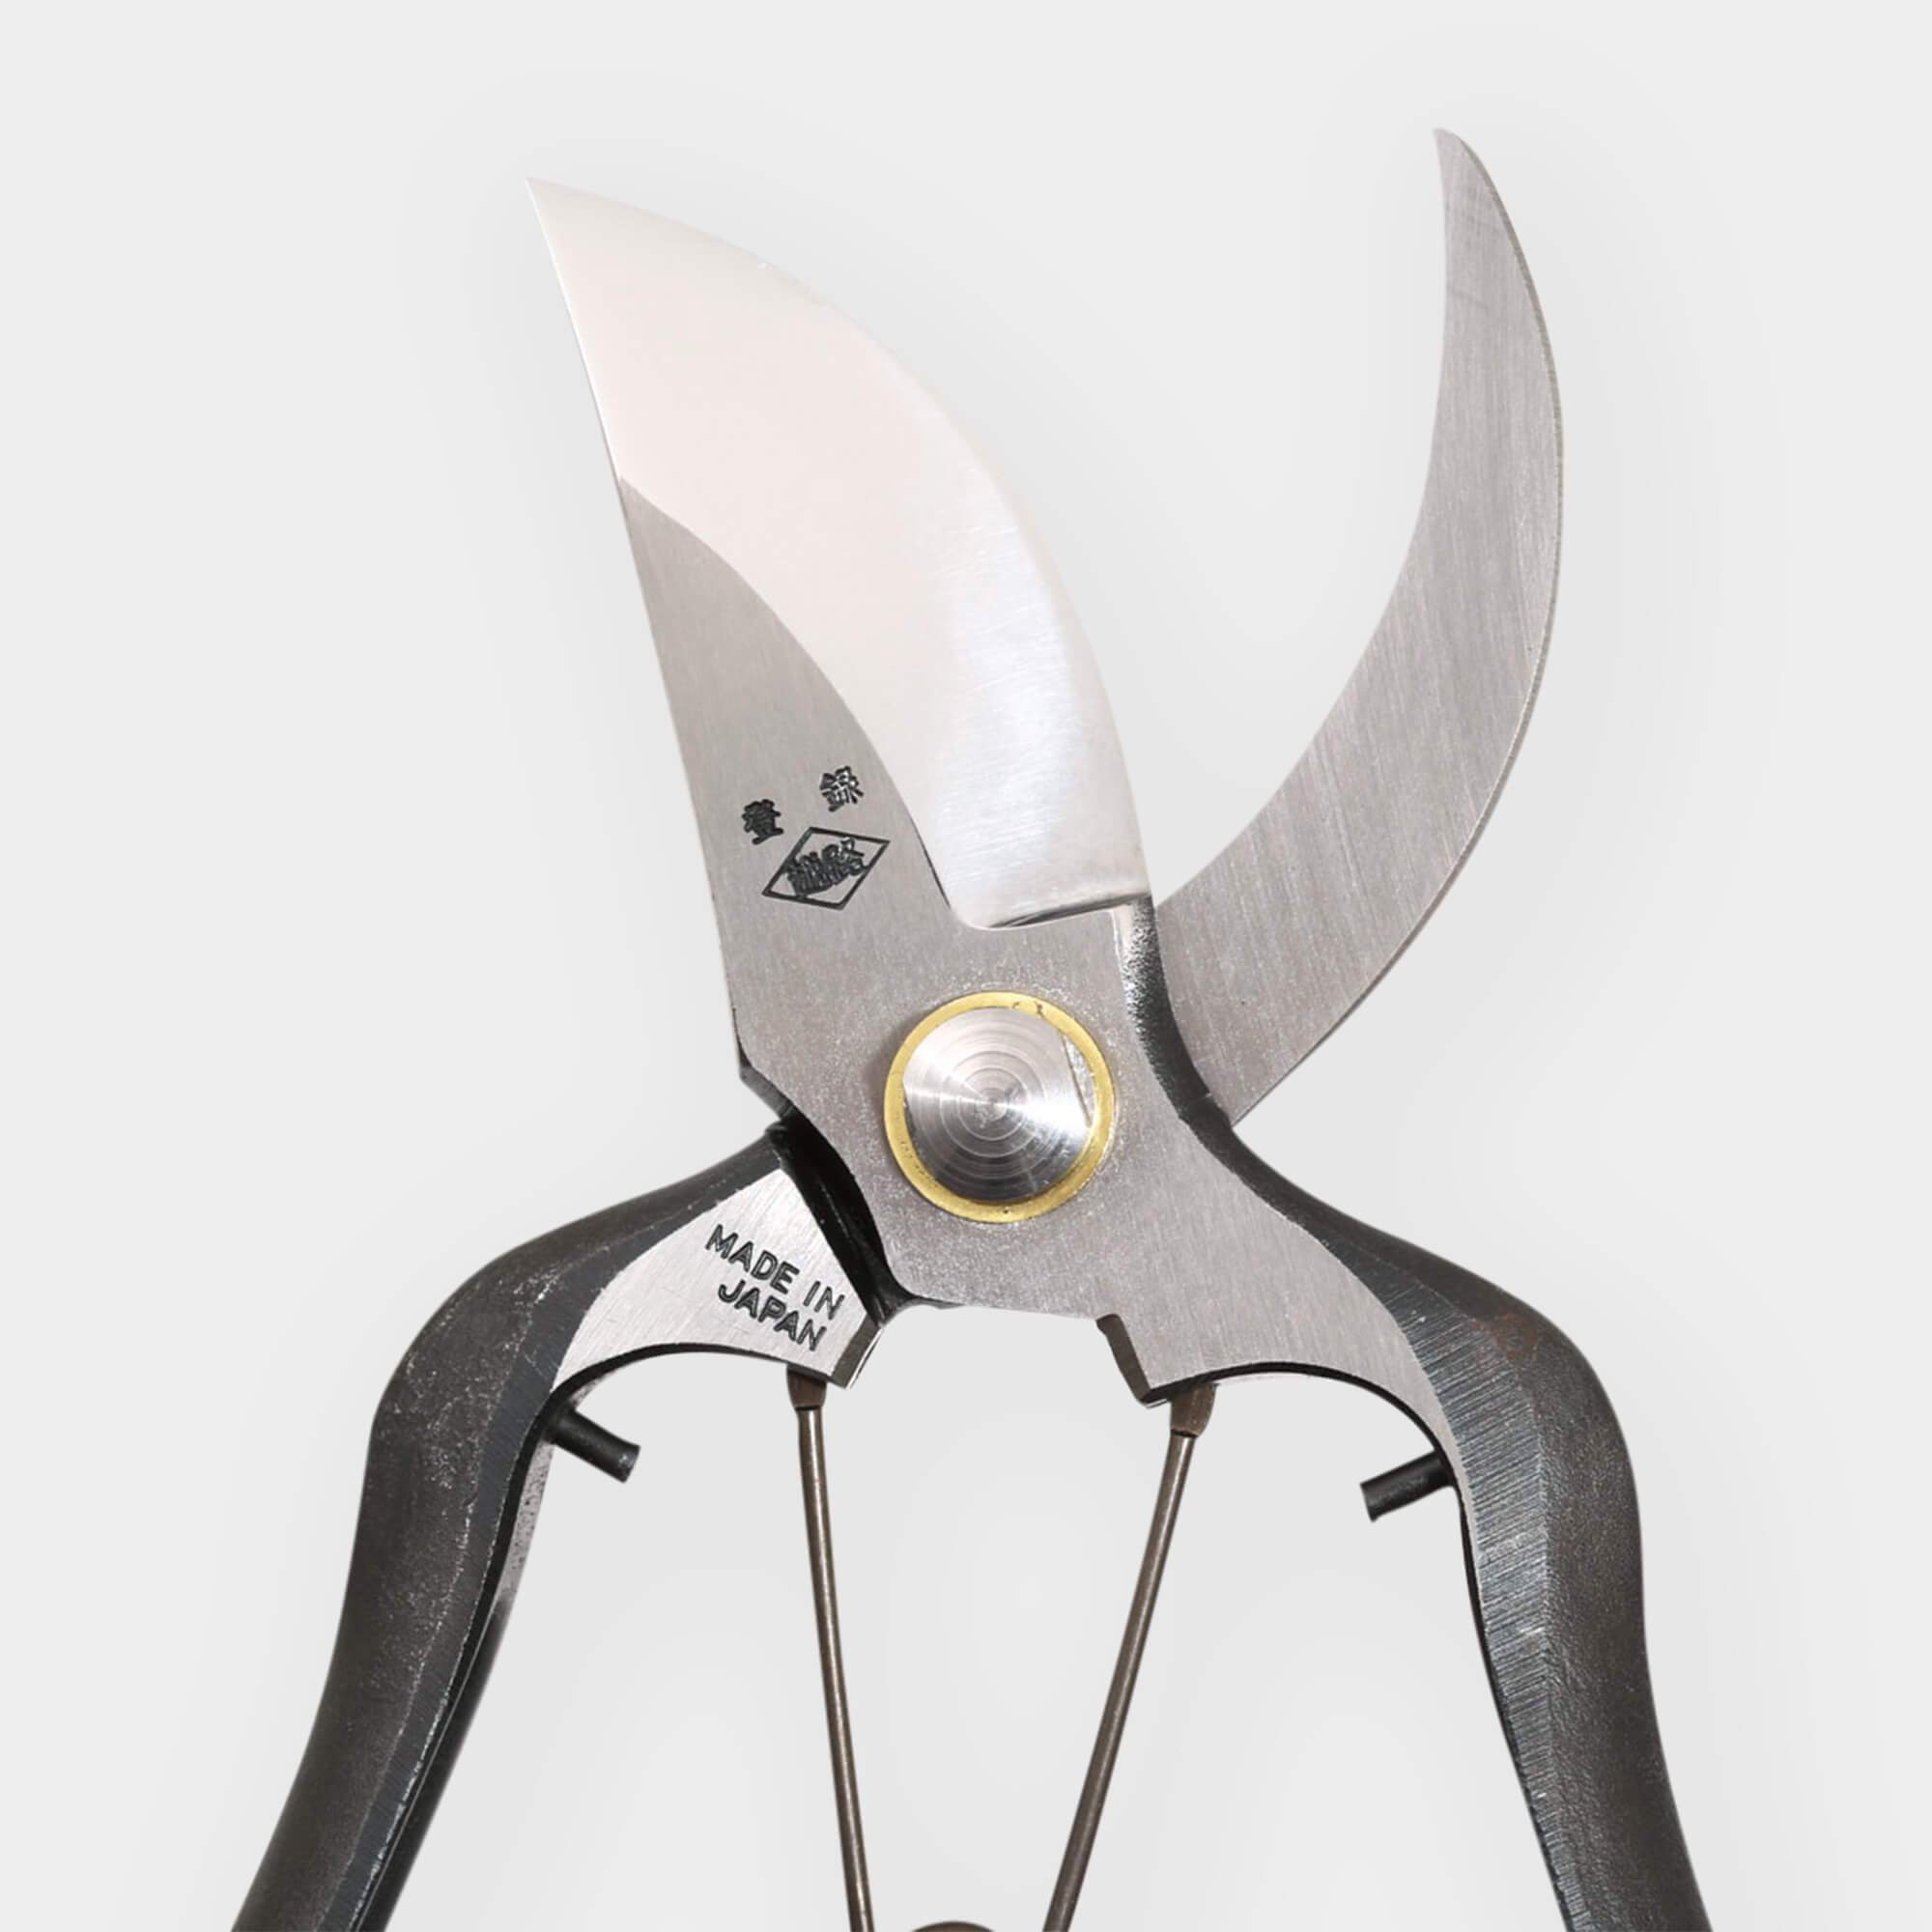 Gardening Shears by Kobayashi - Japanese Tools Australia